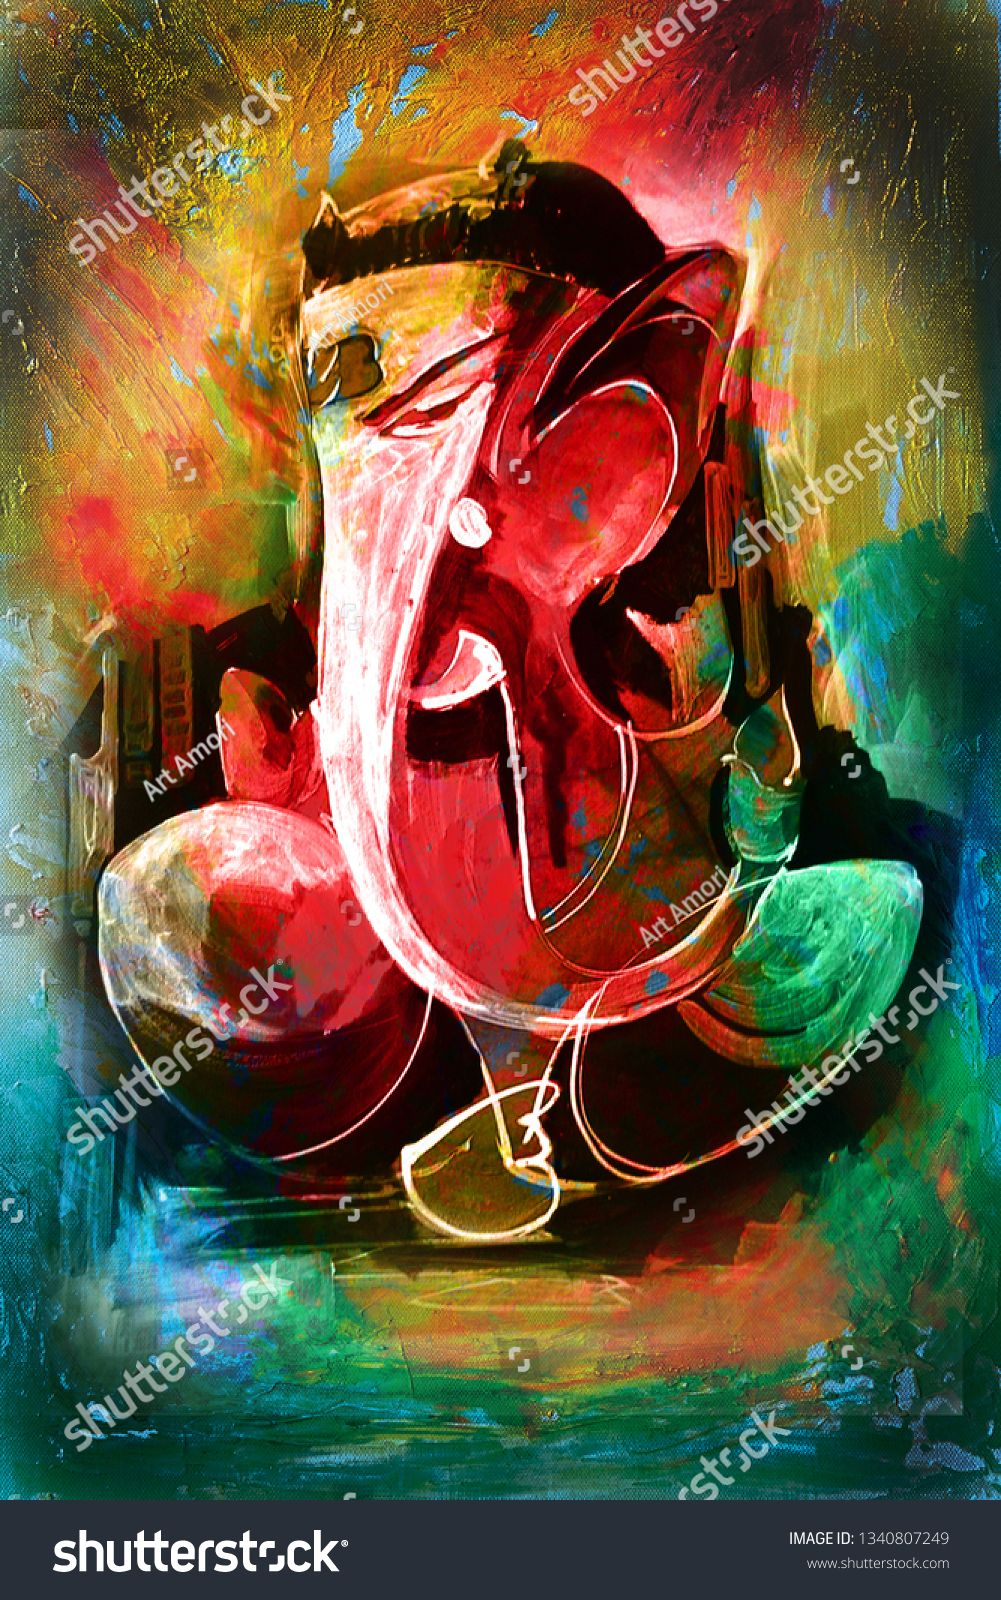 Hindu Lord Ganesha Abstract Texture Background Canvas Oil Painting